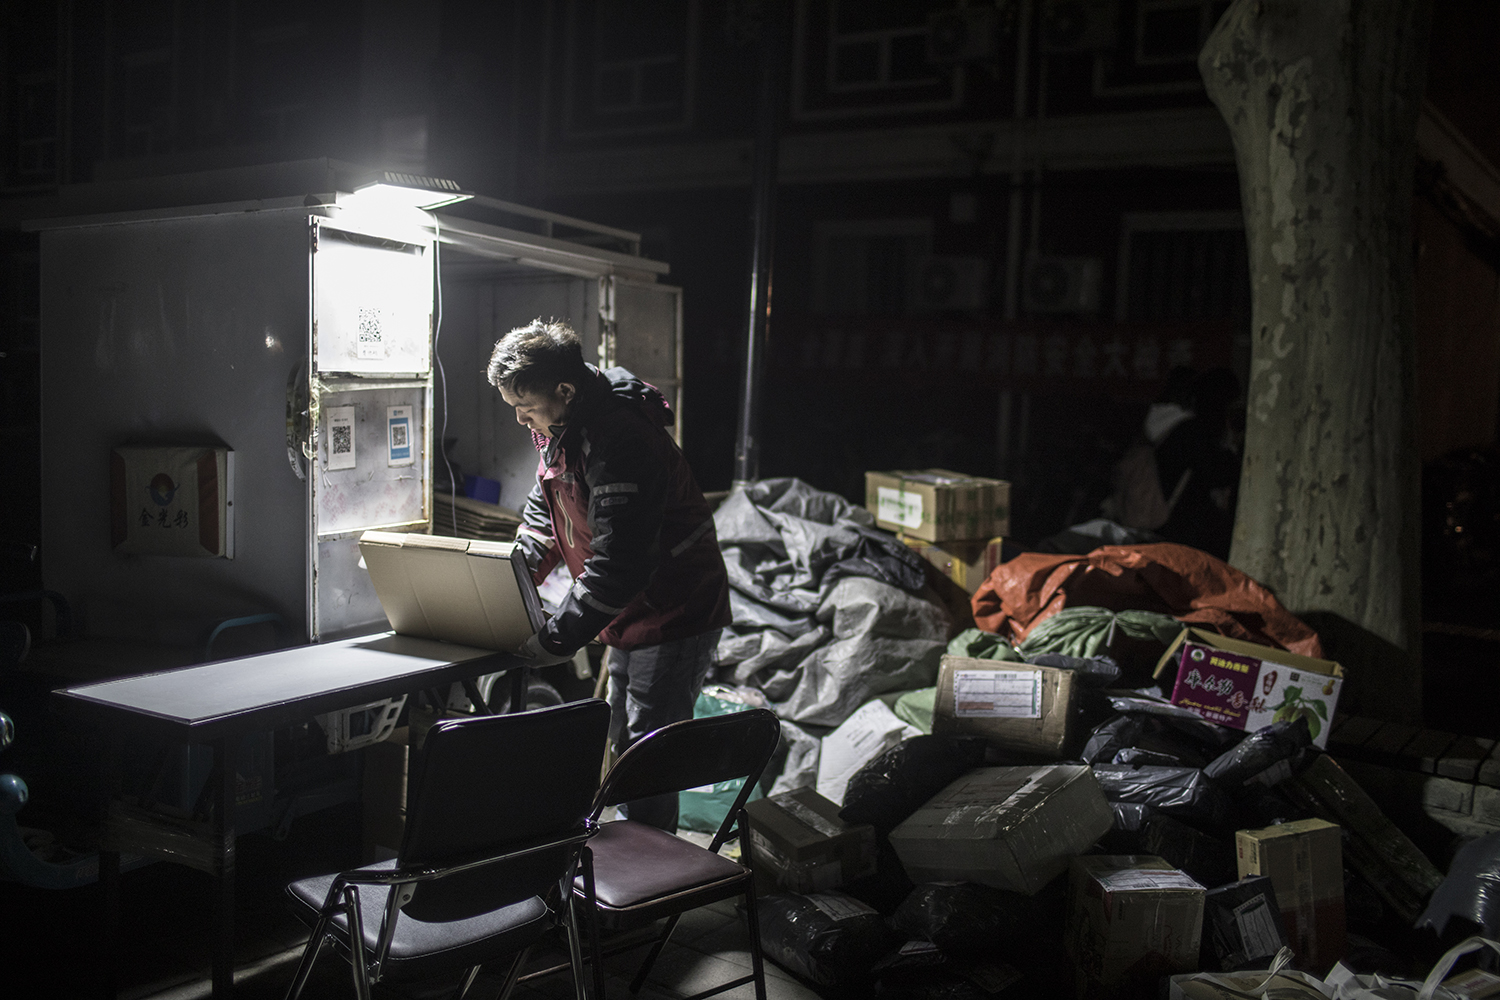 "November 31, 31-year-old delivery man Pan Yabei sorts packages at Beijing Youth Politics College. Pan's workload is heavy after Alibaba's Singles' Day sale. He has been working at the school for nine years but says he will have to leave Beijing soon because the home he rents is considered ""unsafe"" and he has been urged by authorities to move out. He says he can't find another affordable place to stay. (Feng Haiyong/Tencent Guyu Project)"